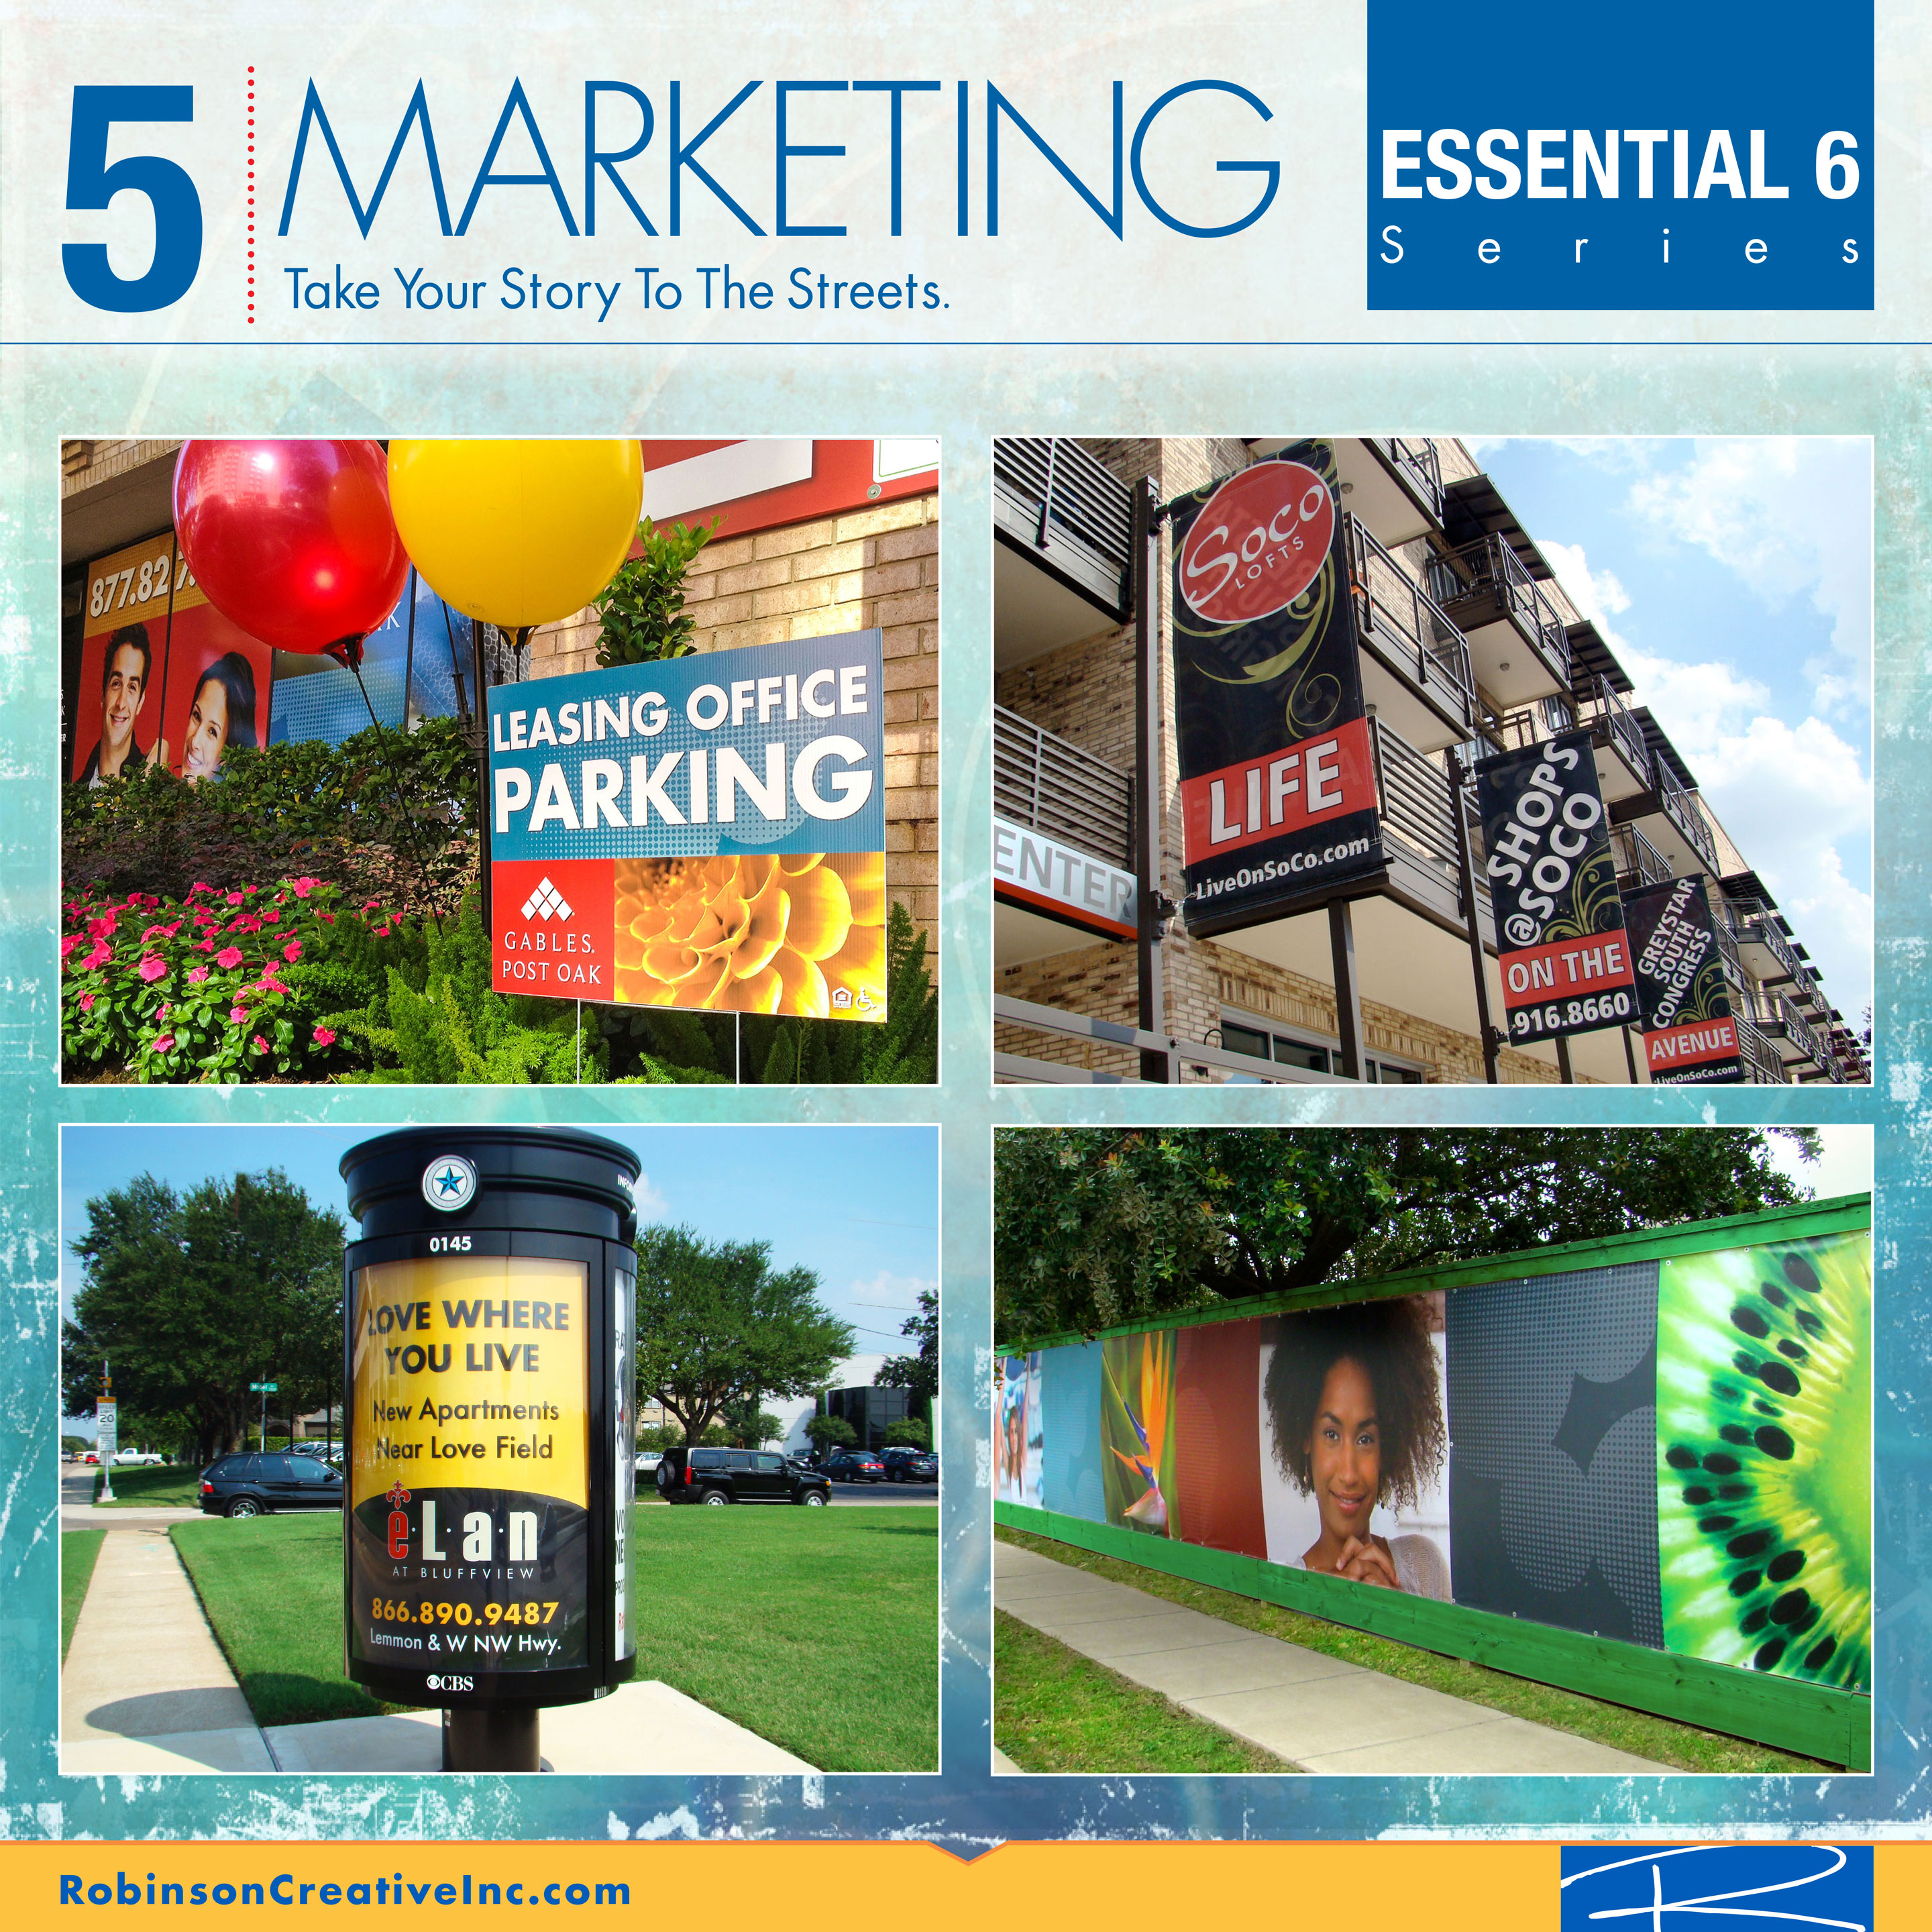 The Essential 6 - Marketing